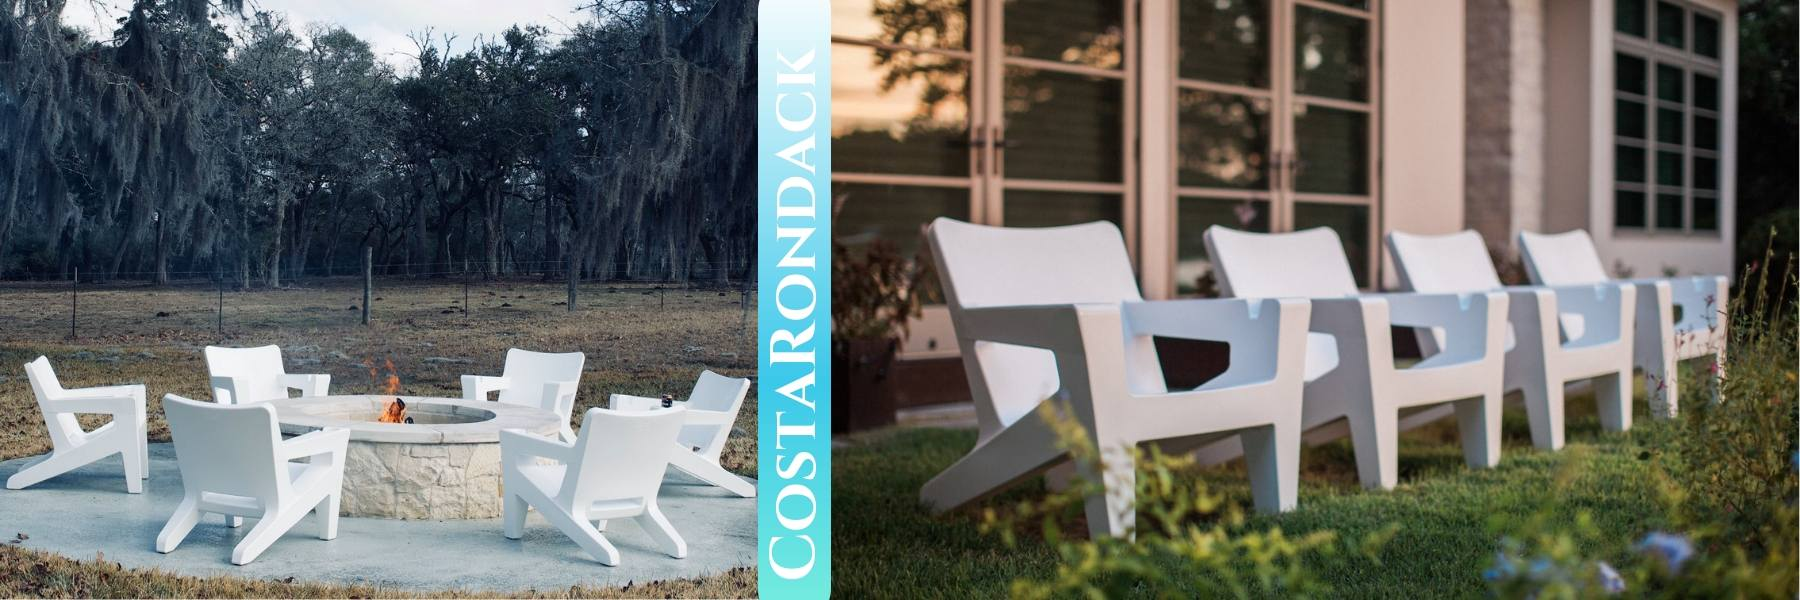 costarondack chairs for the coastal outdoors and firepit